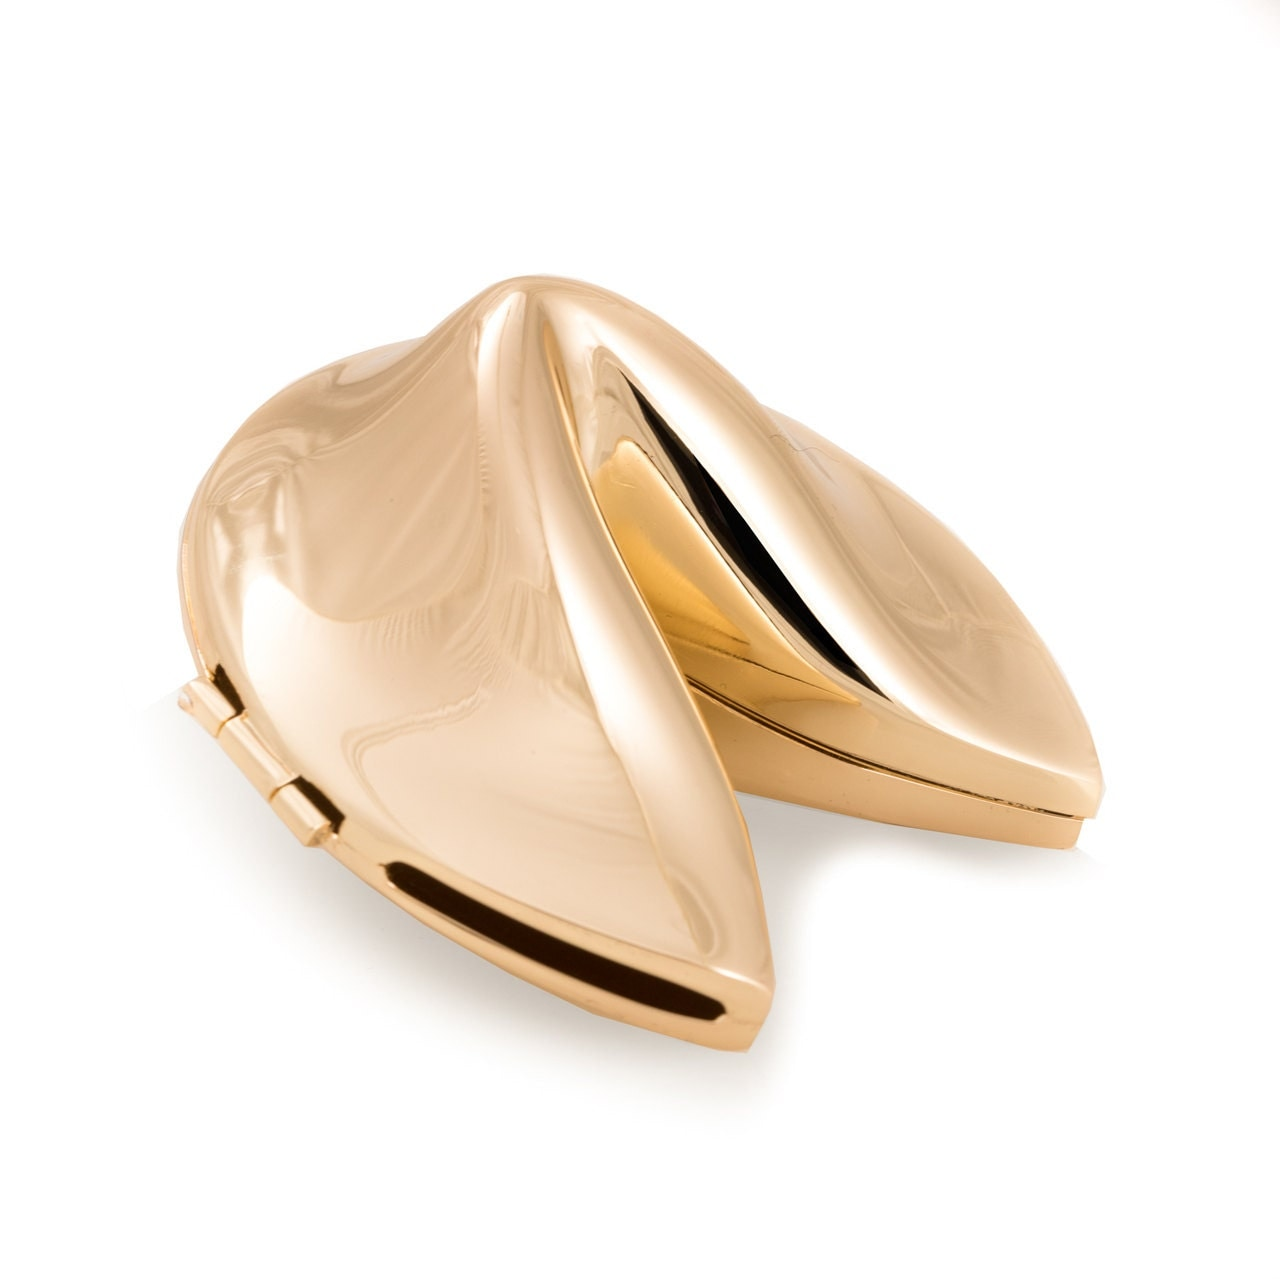 Gold fortune cookie box for Fortune cookie jewelry box